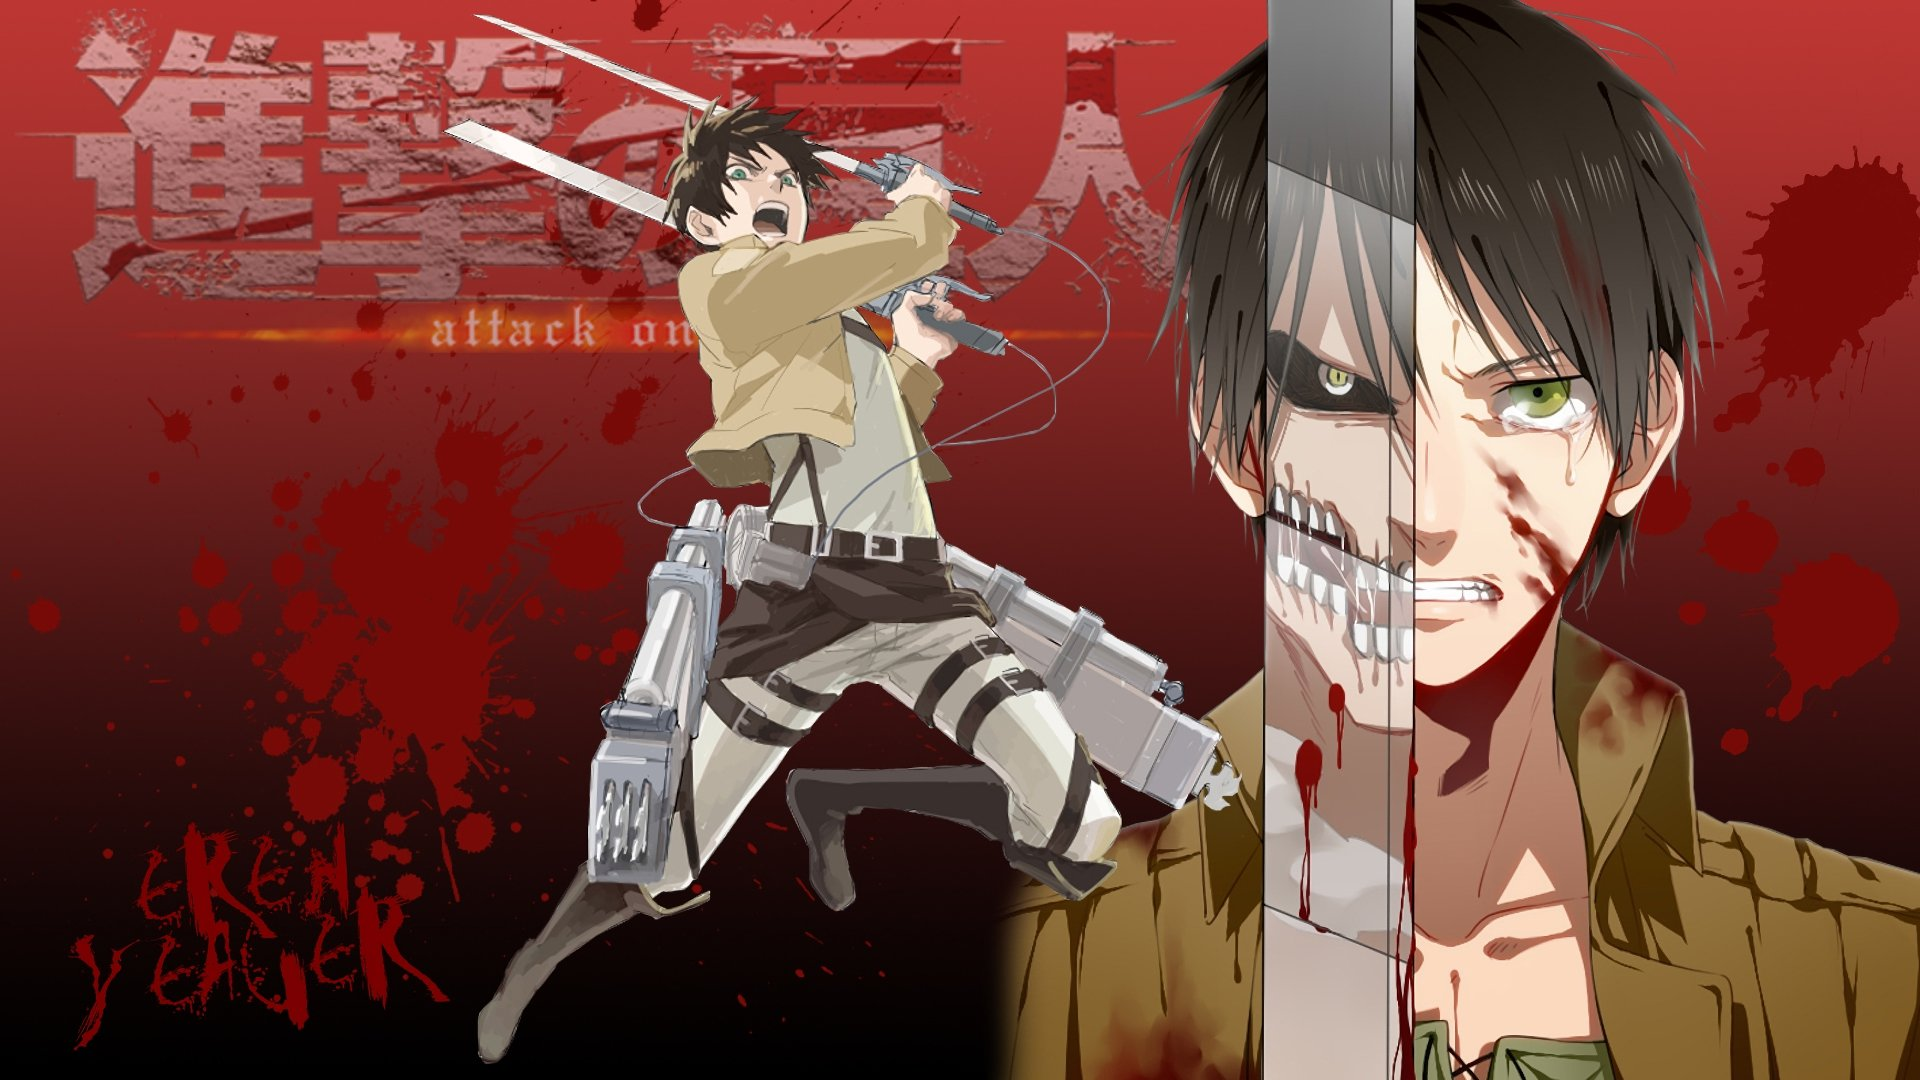 Download Hd 1080p Eren Yeager Desktop Wallpaper Id 206660